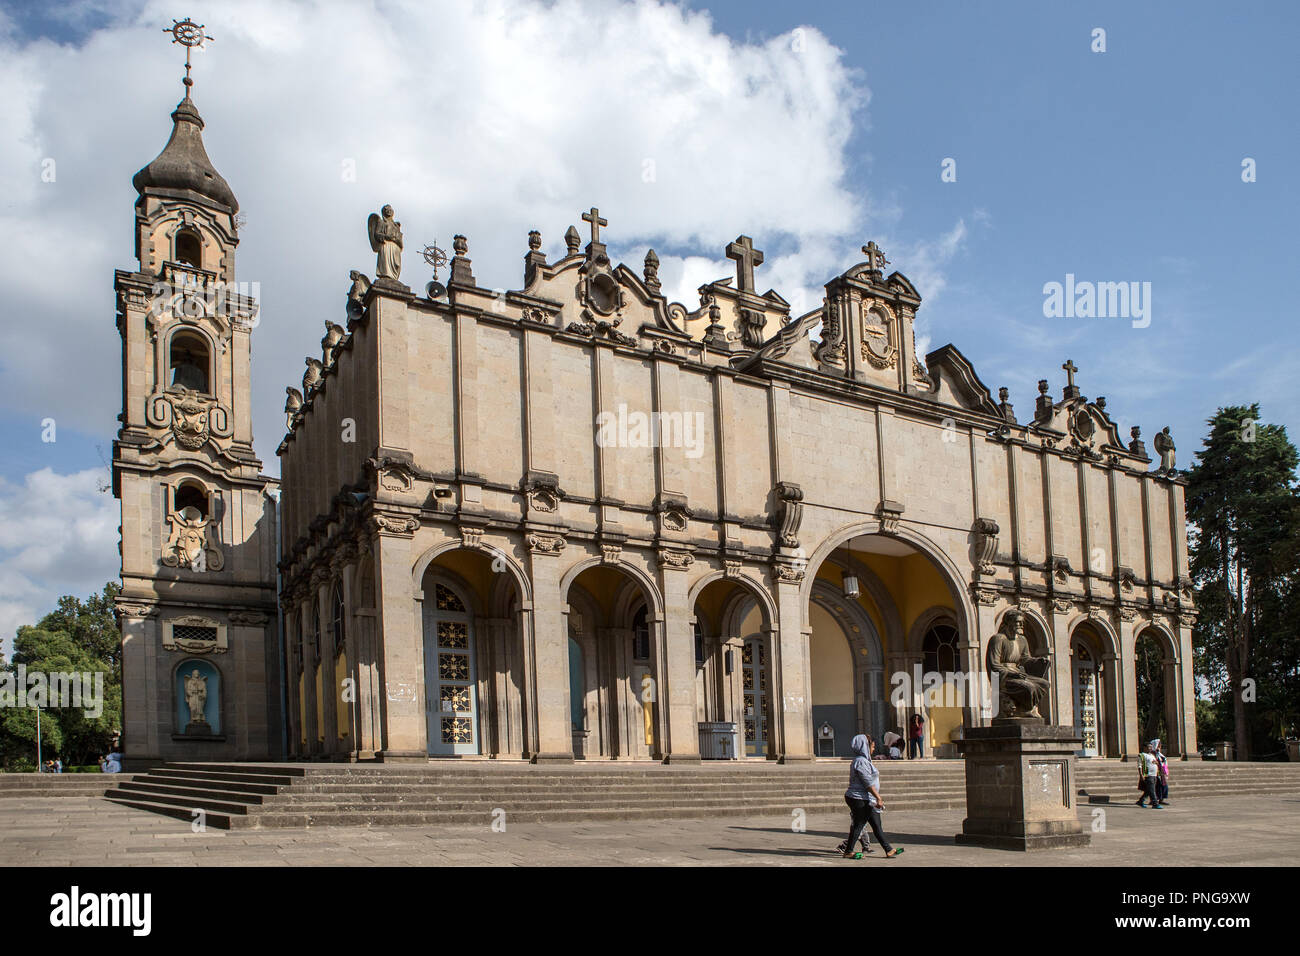 Holy Trinity Cathedral, aka in Amharic as Kidist Selassie, Ethiopian Orthodox Tewahedo Church, resting place for  Emperor Haile Selassie + family - Stock Image